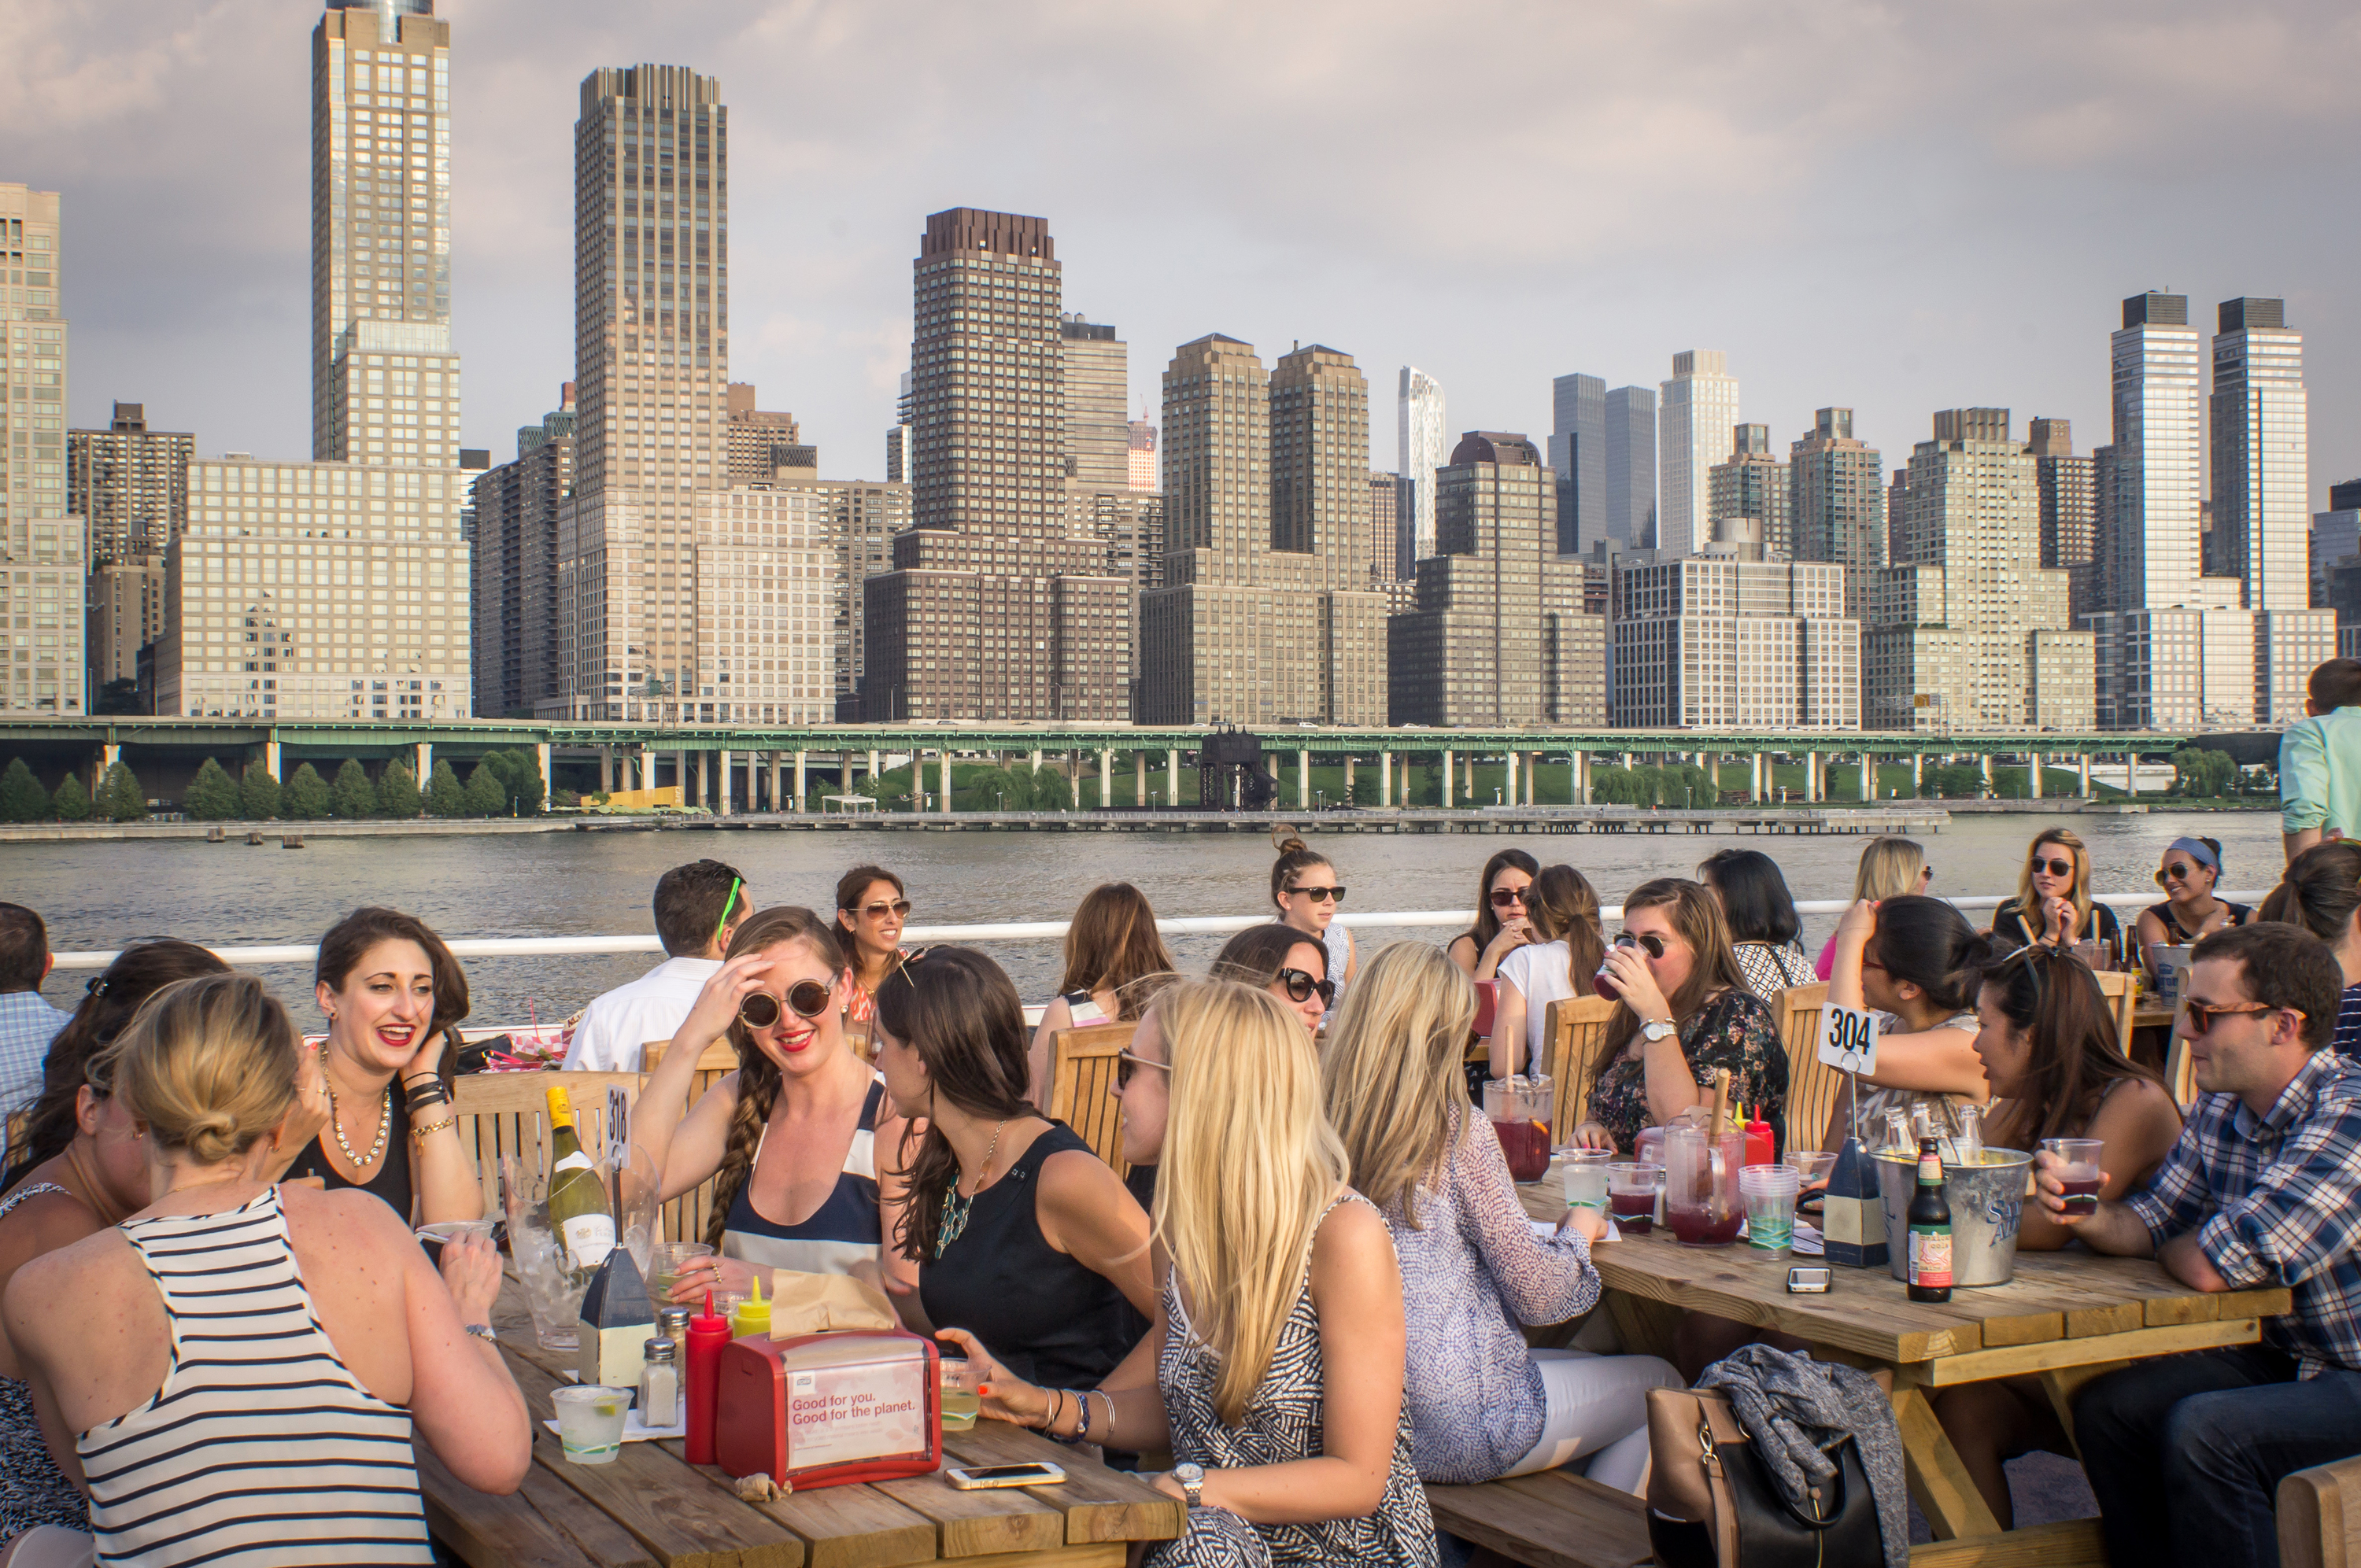 NYC's best waterfront restaurants and bars